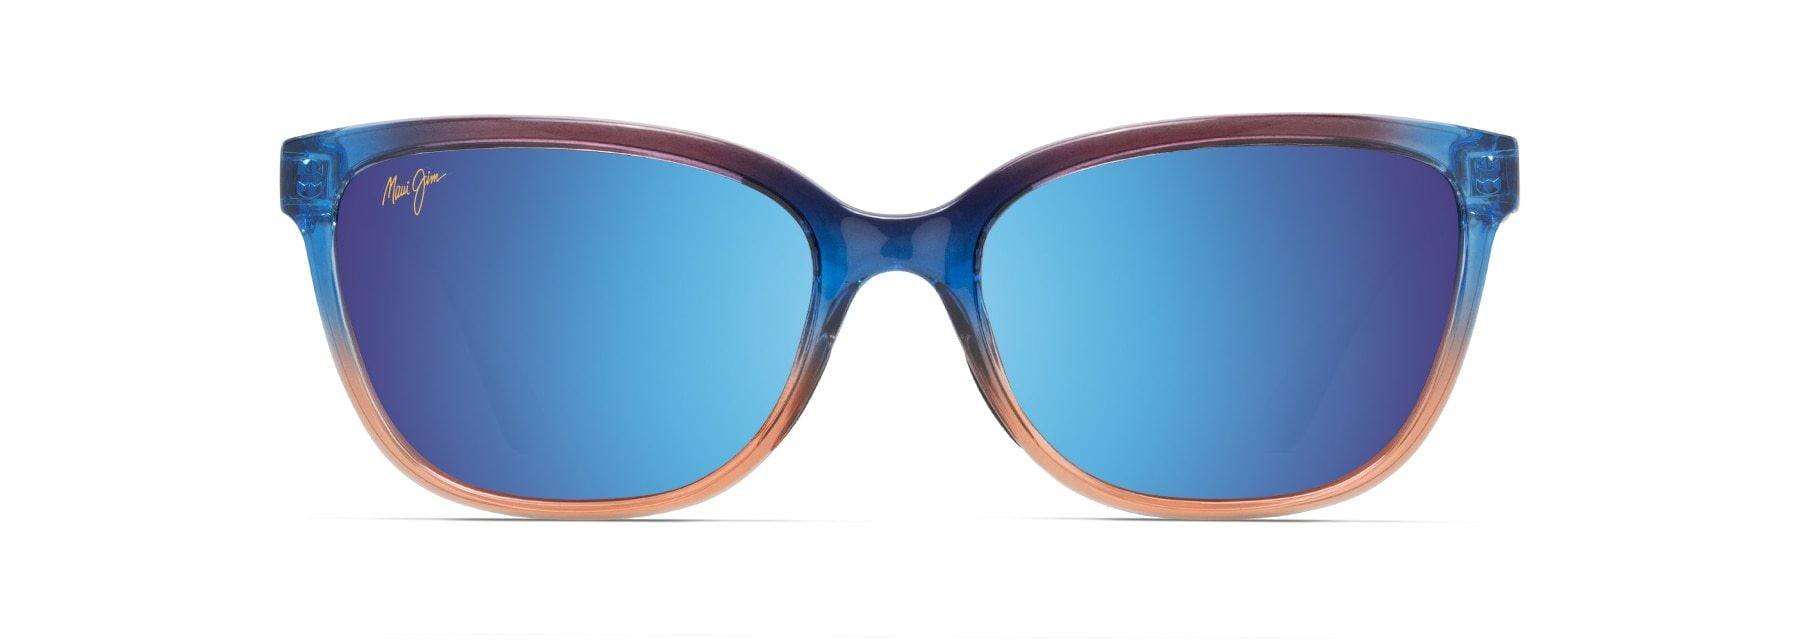 MyMaui Honi MM758-012 Sunglasses